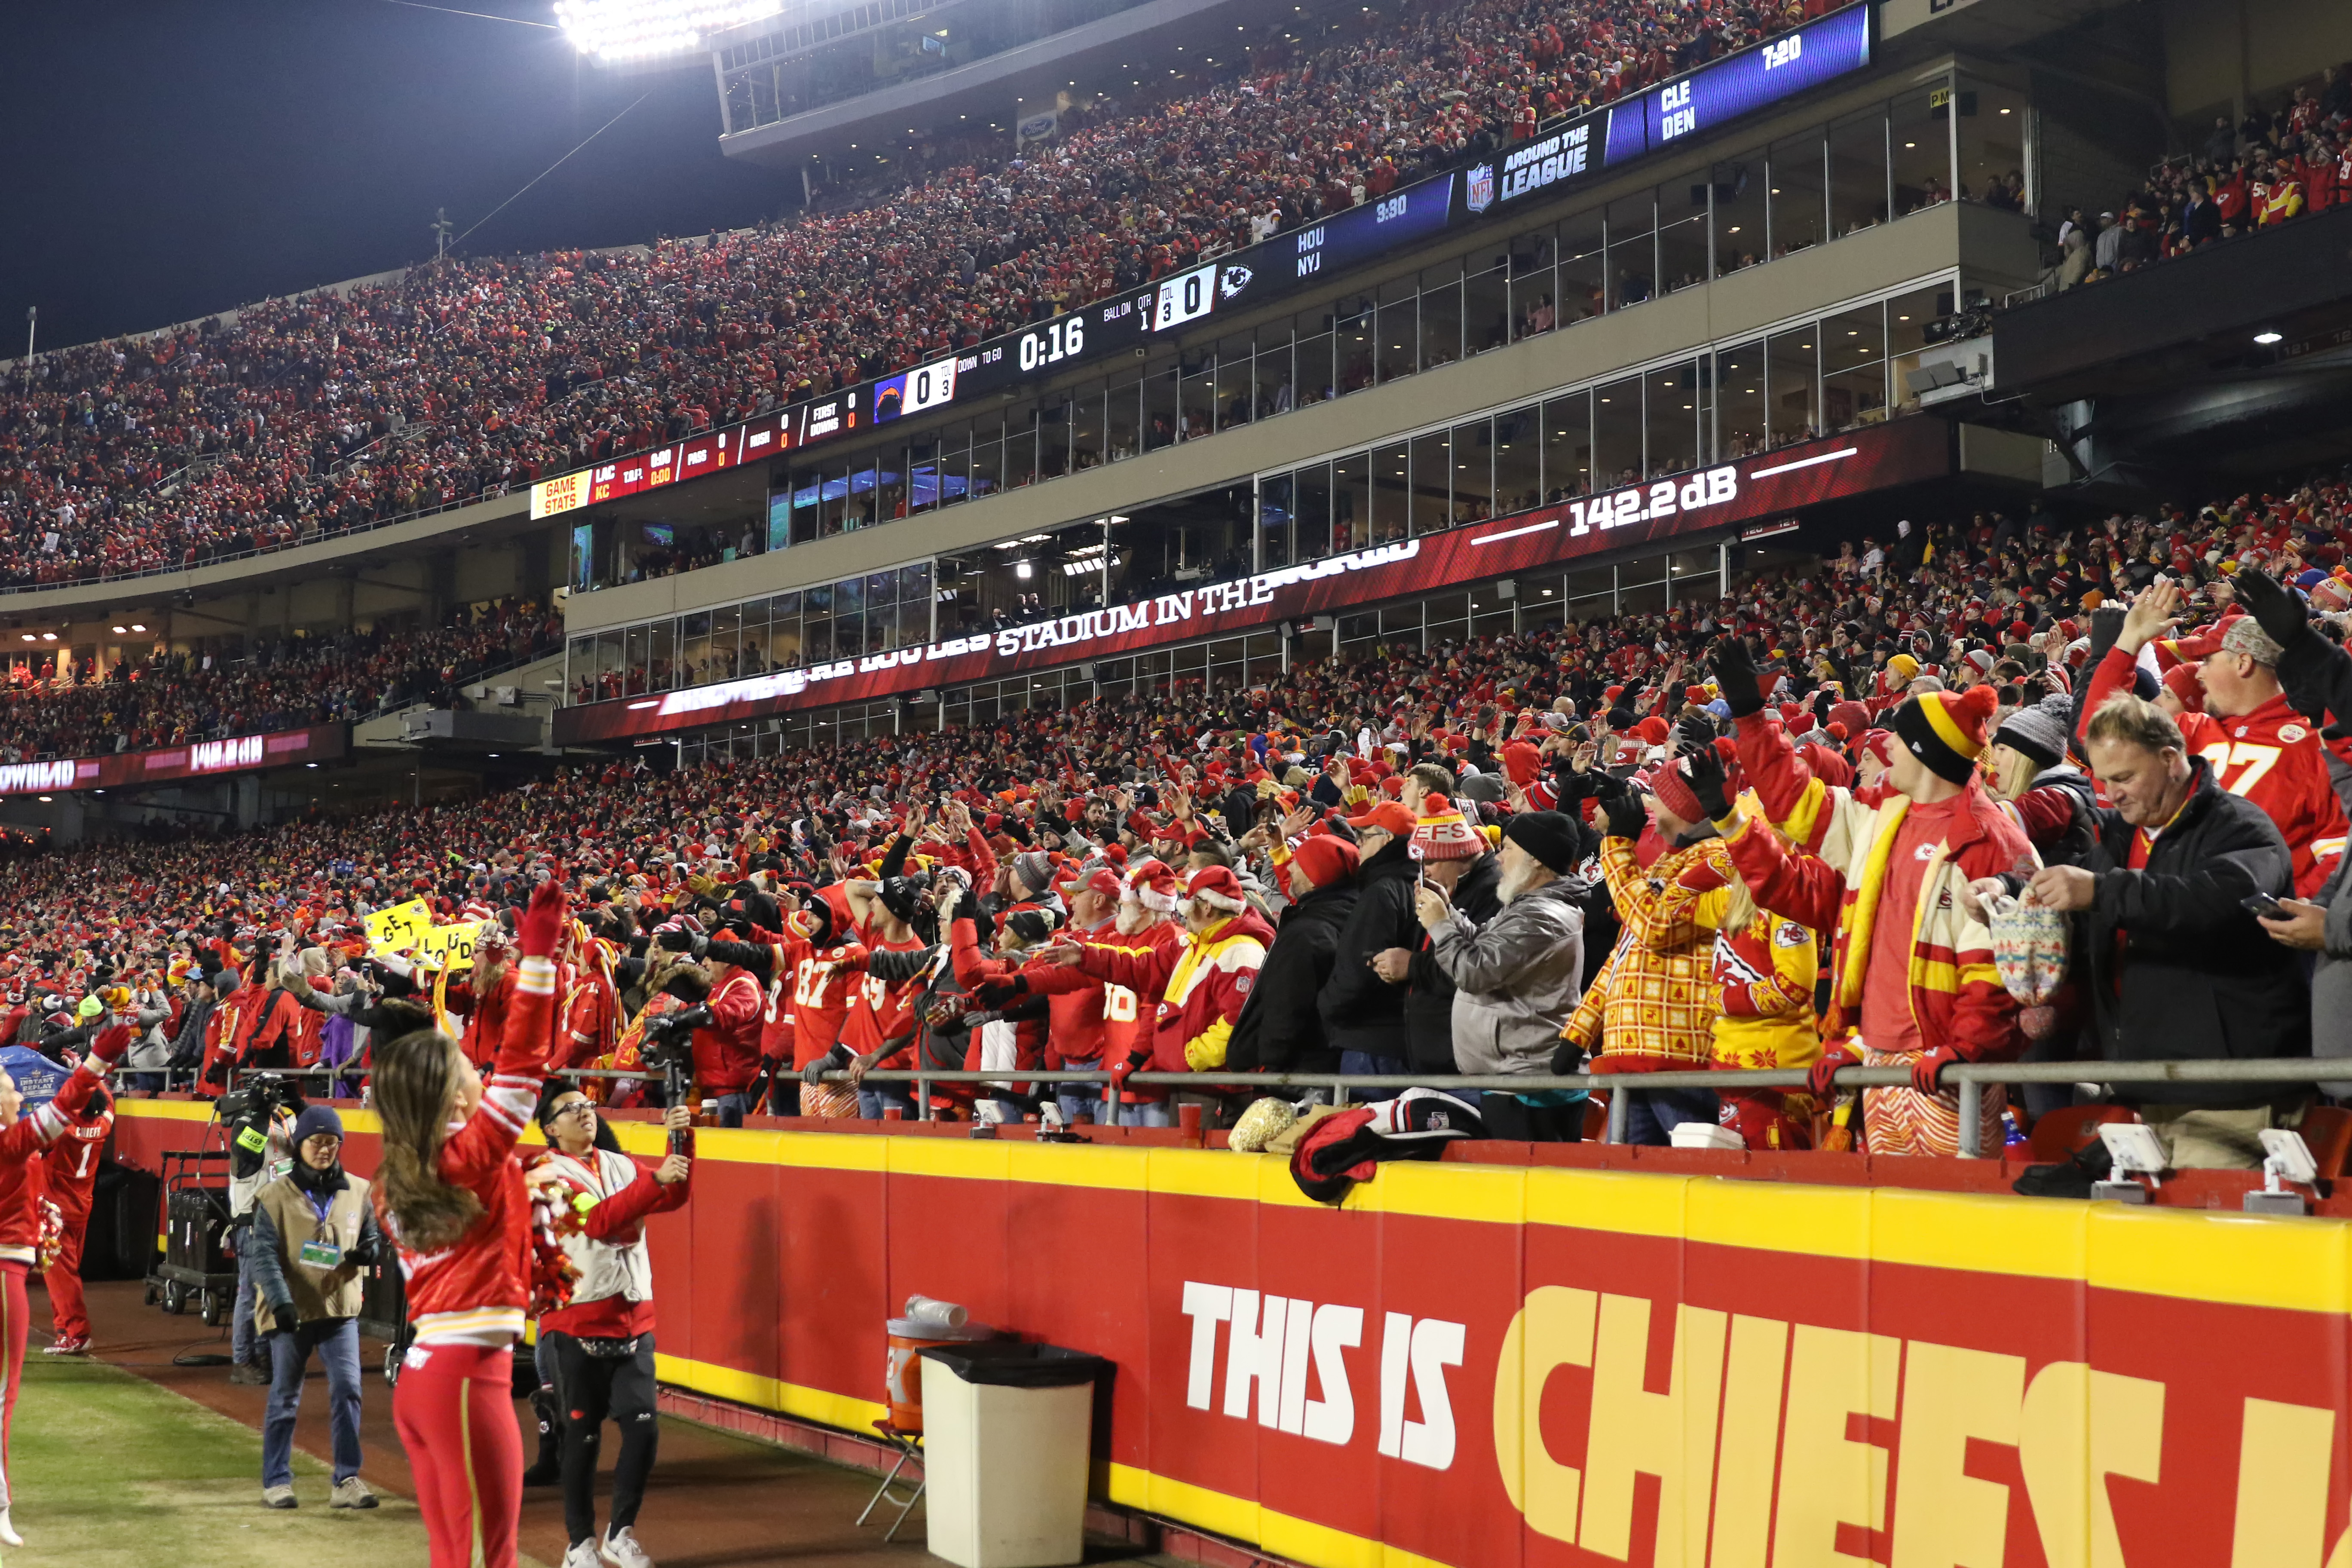 NFL: DEC 13 Chargers at Chiefs